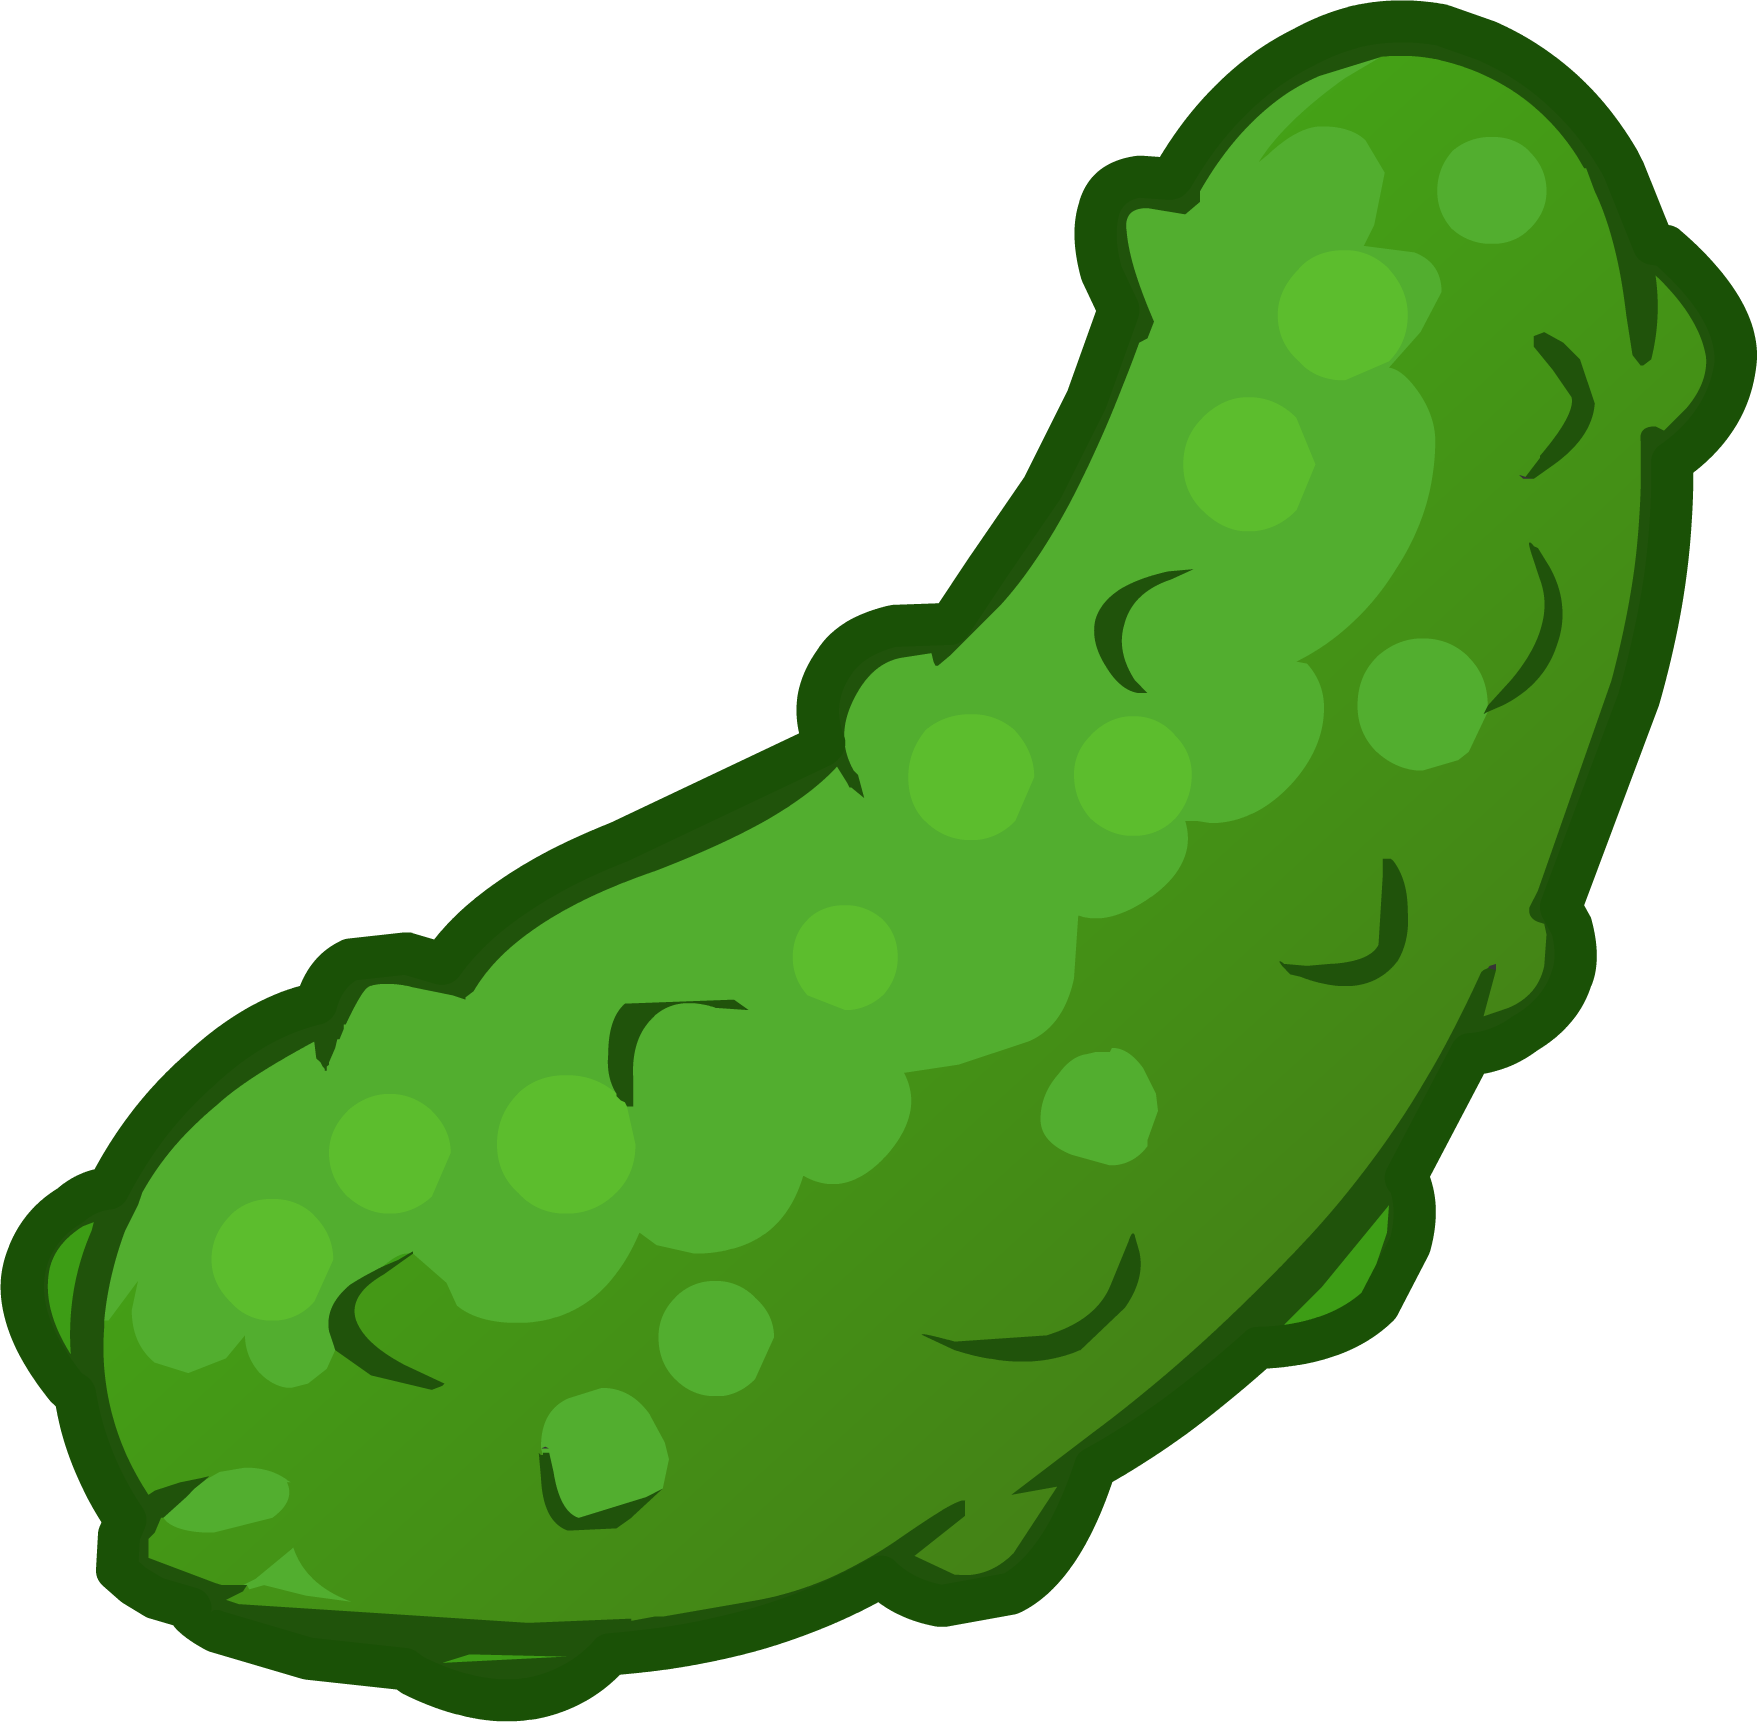 Christmas pickle clipart clip free stock Image - Pickle.png | Club Penguin Wiki | FANDOM powered by Wikia clip free stock